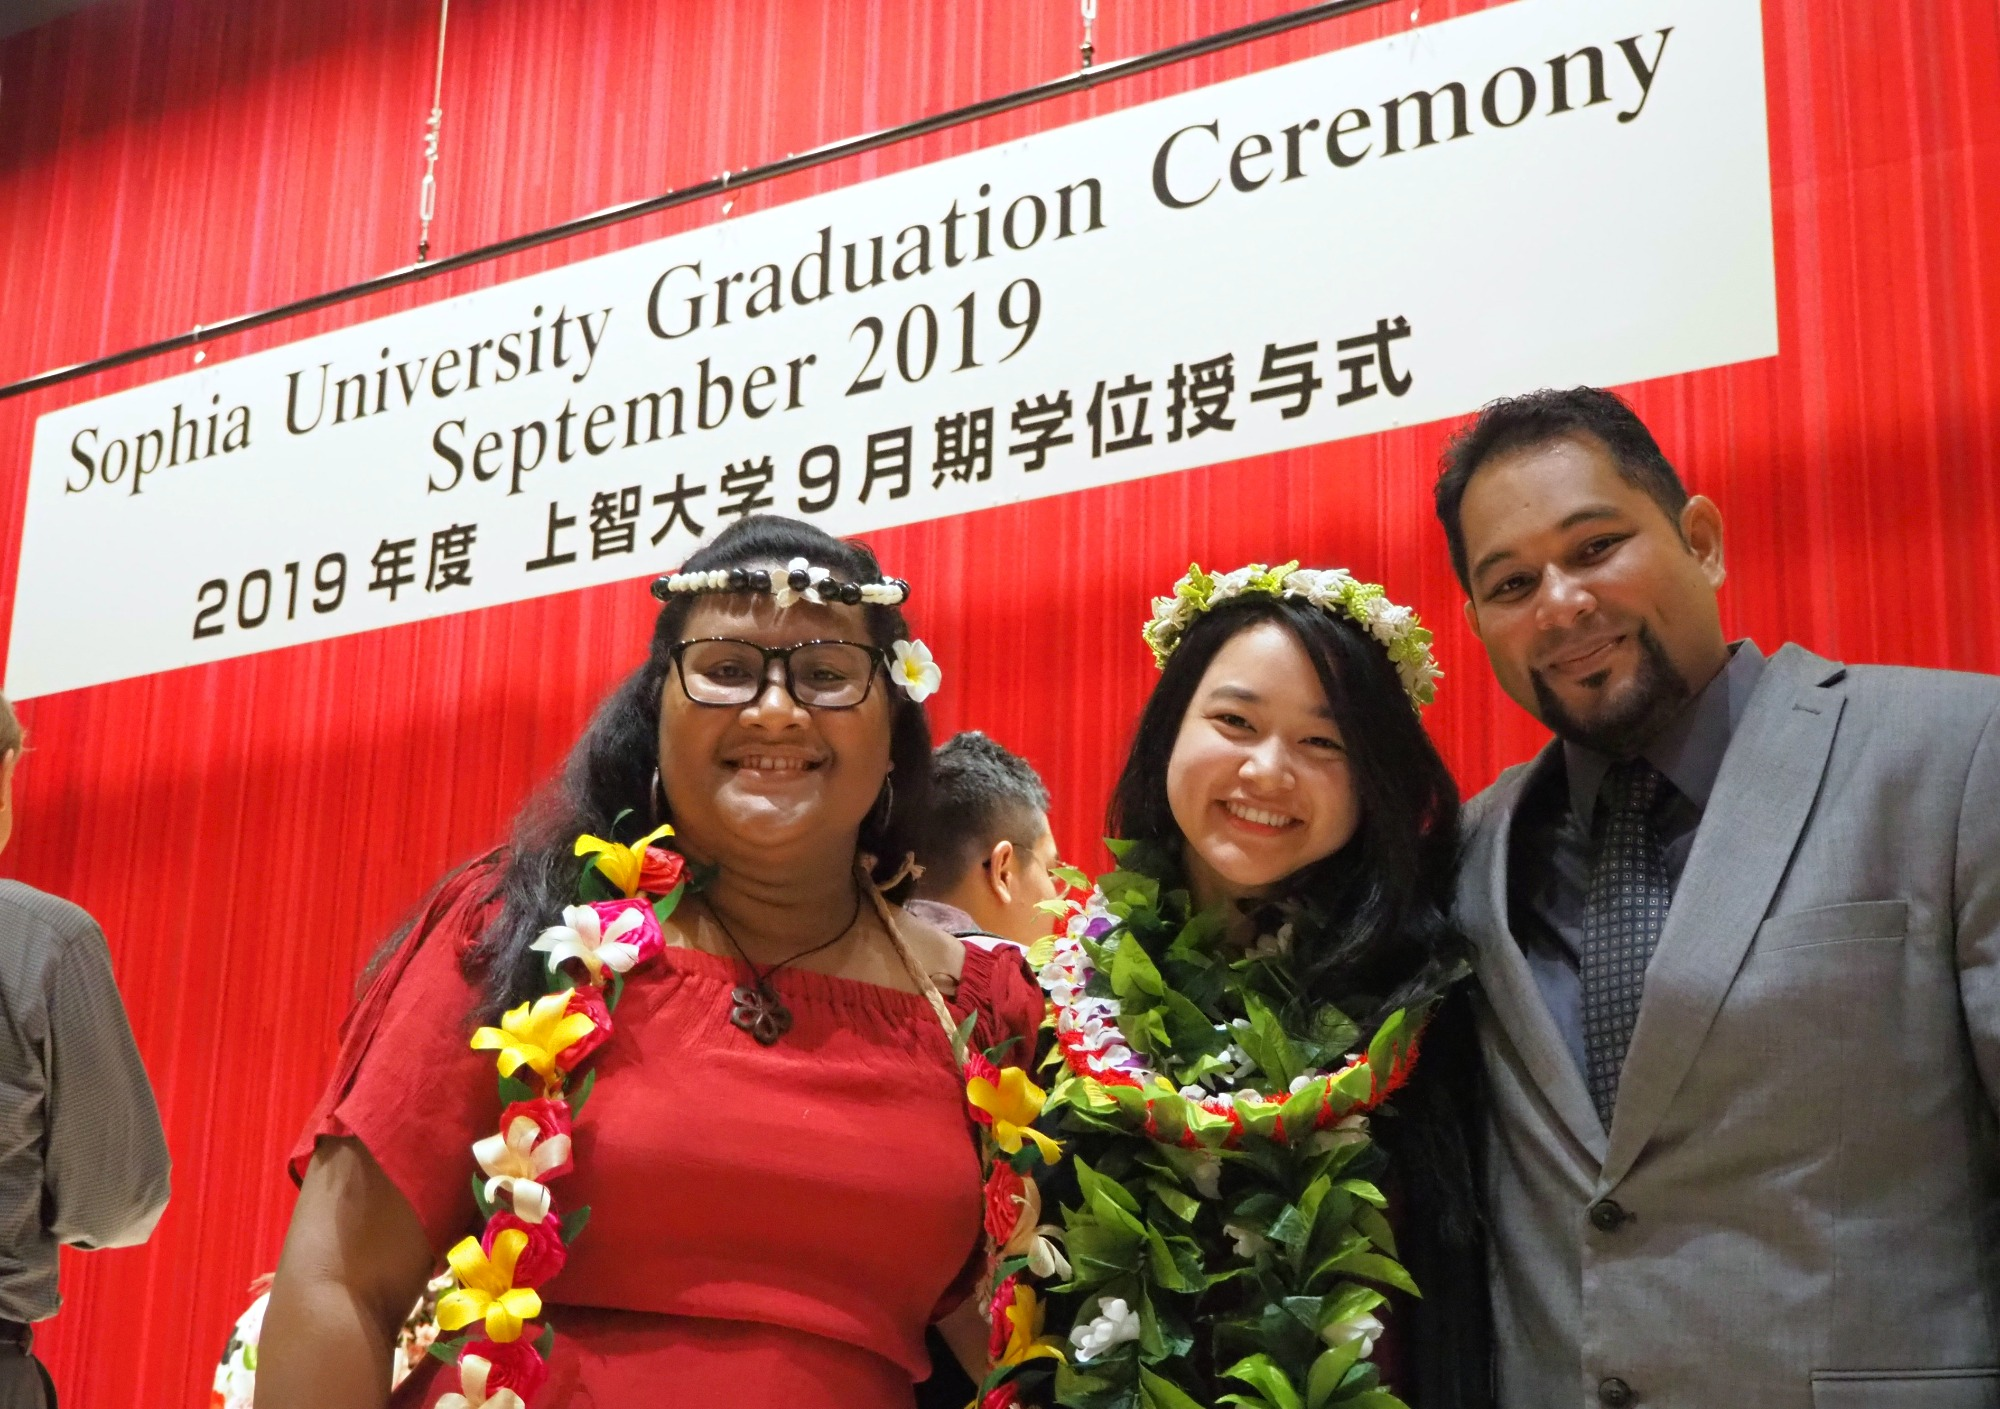 2nd Term Xavier Exchange Students & 1st Term MCT Exchange Students Graduate Sophia University